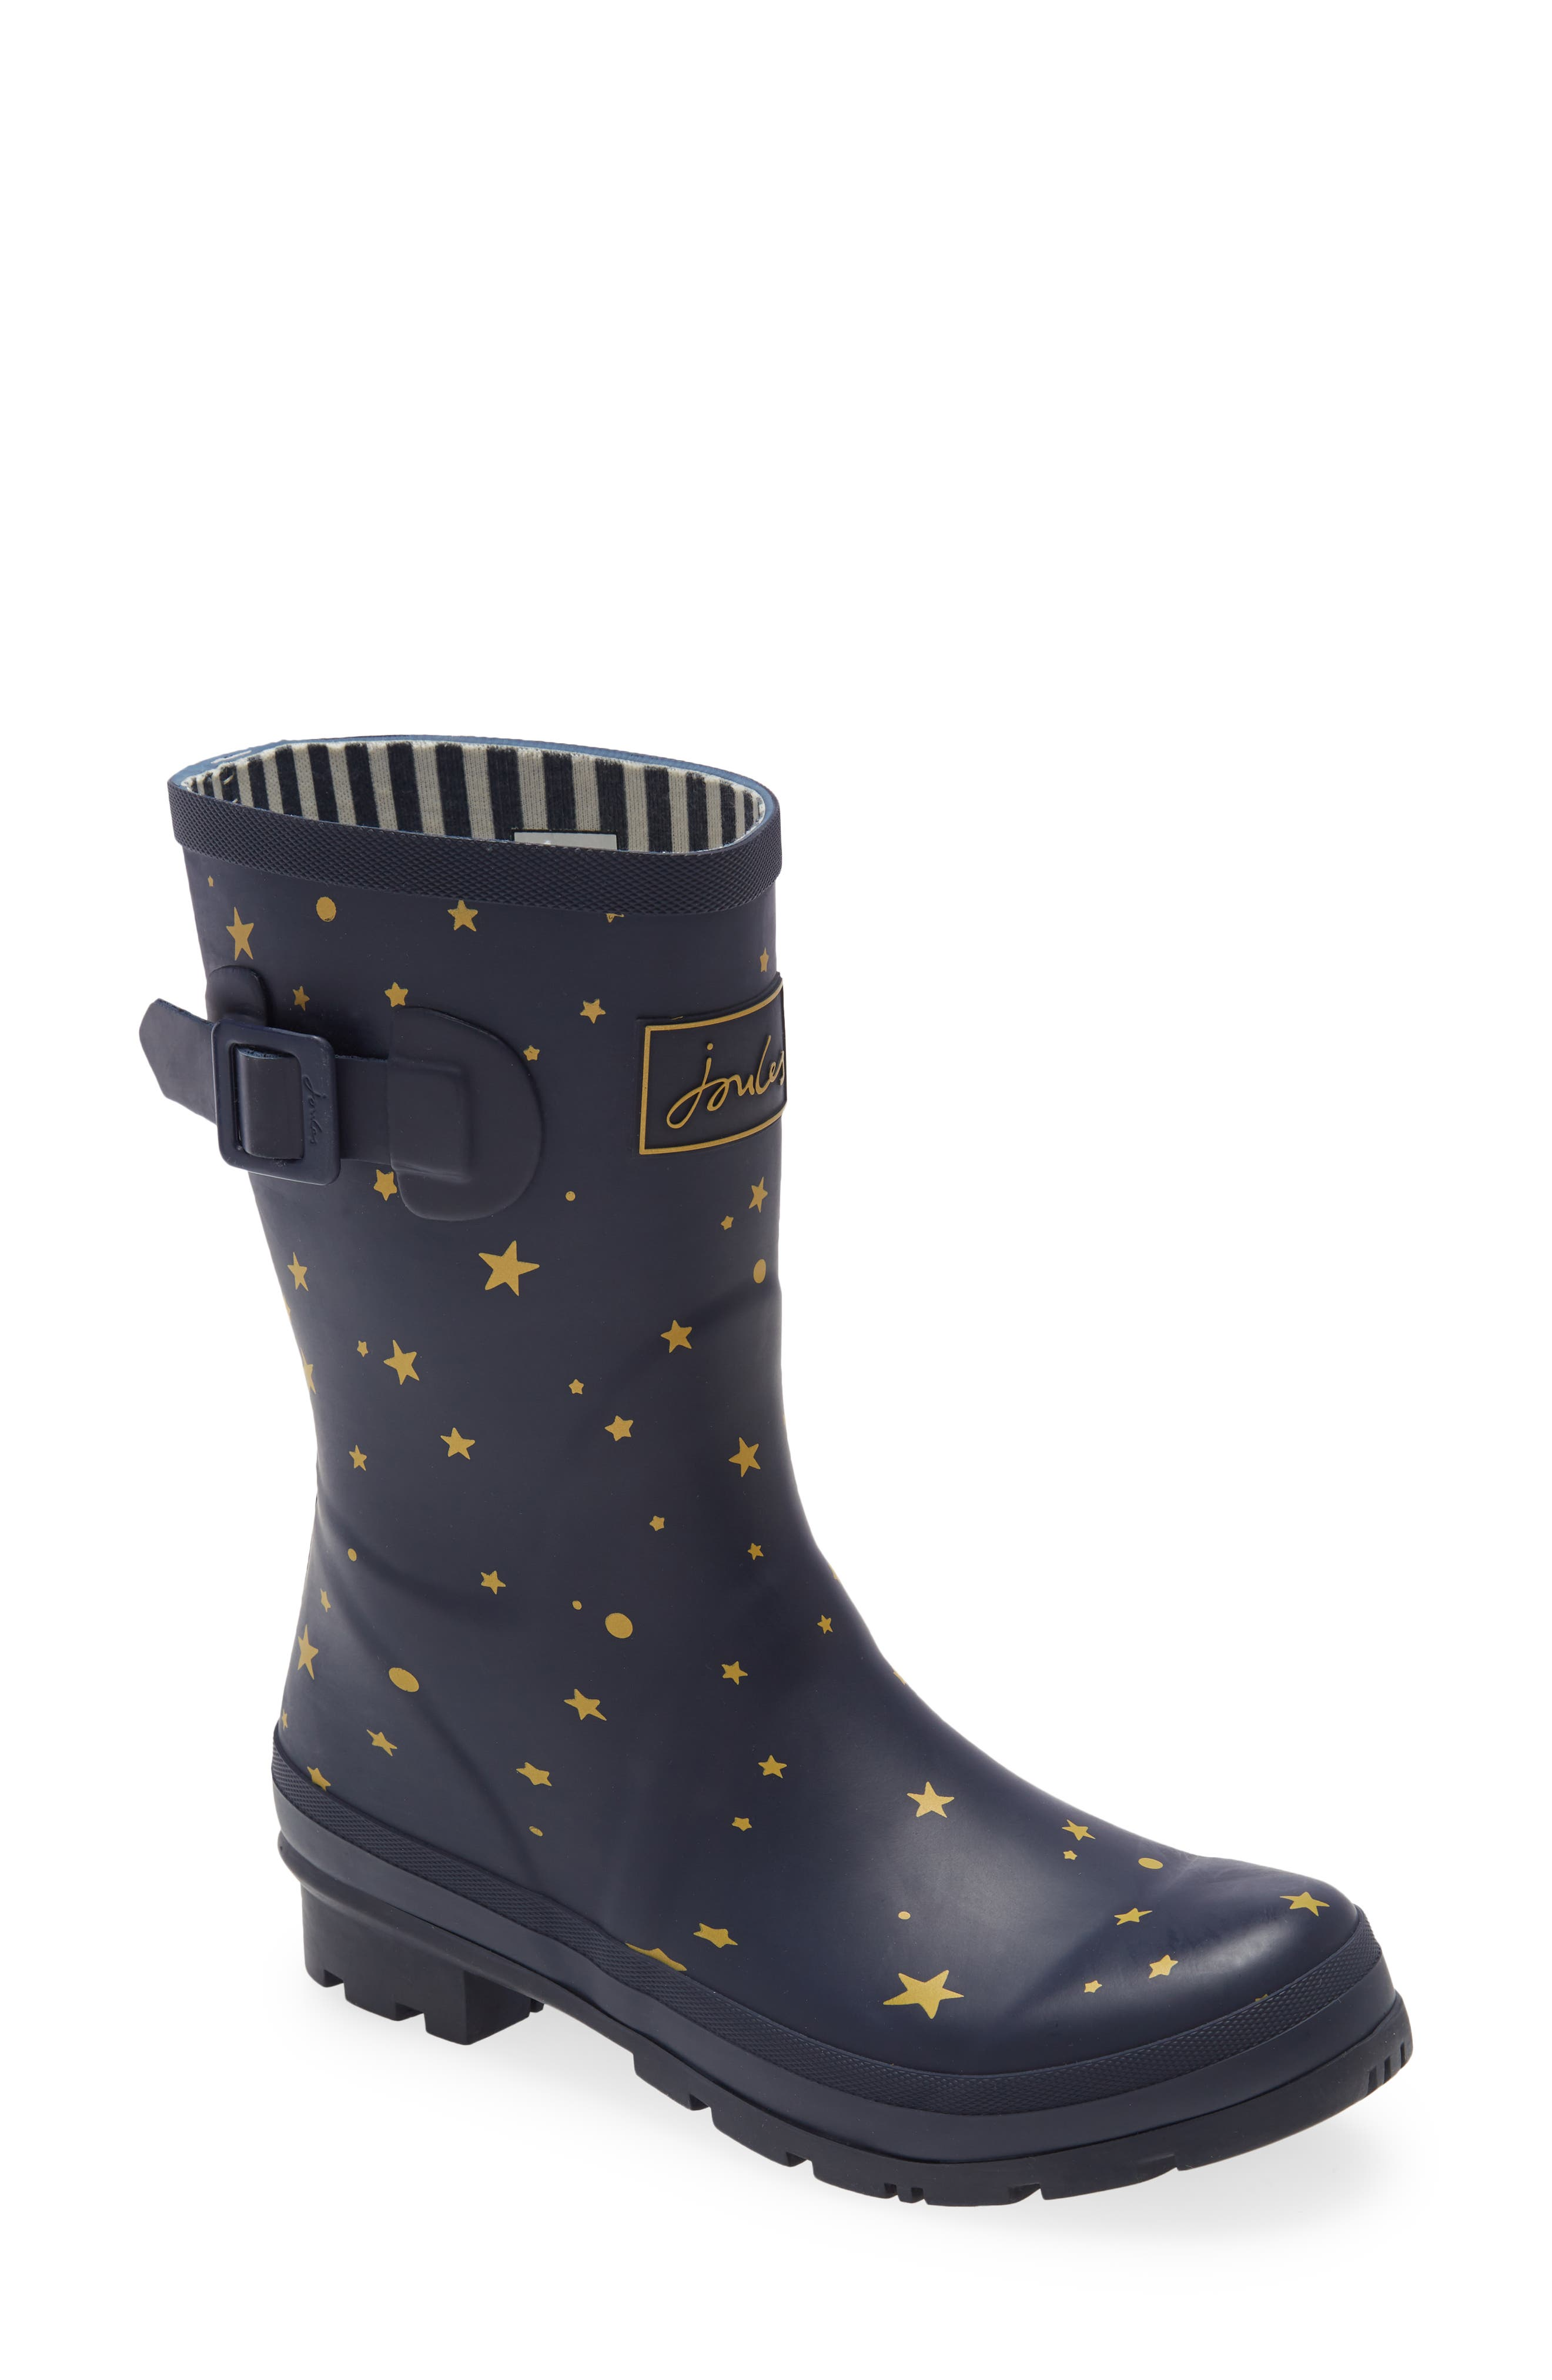 Molly Floral Print Welly Waterproof Rain Boot